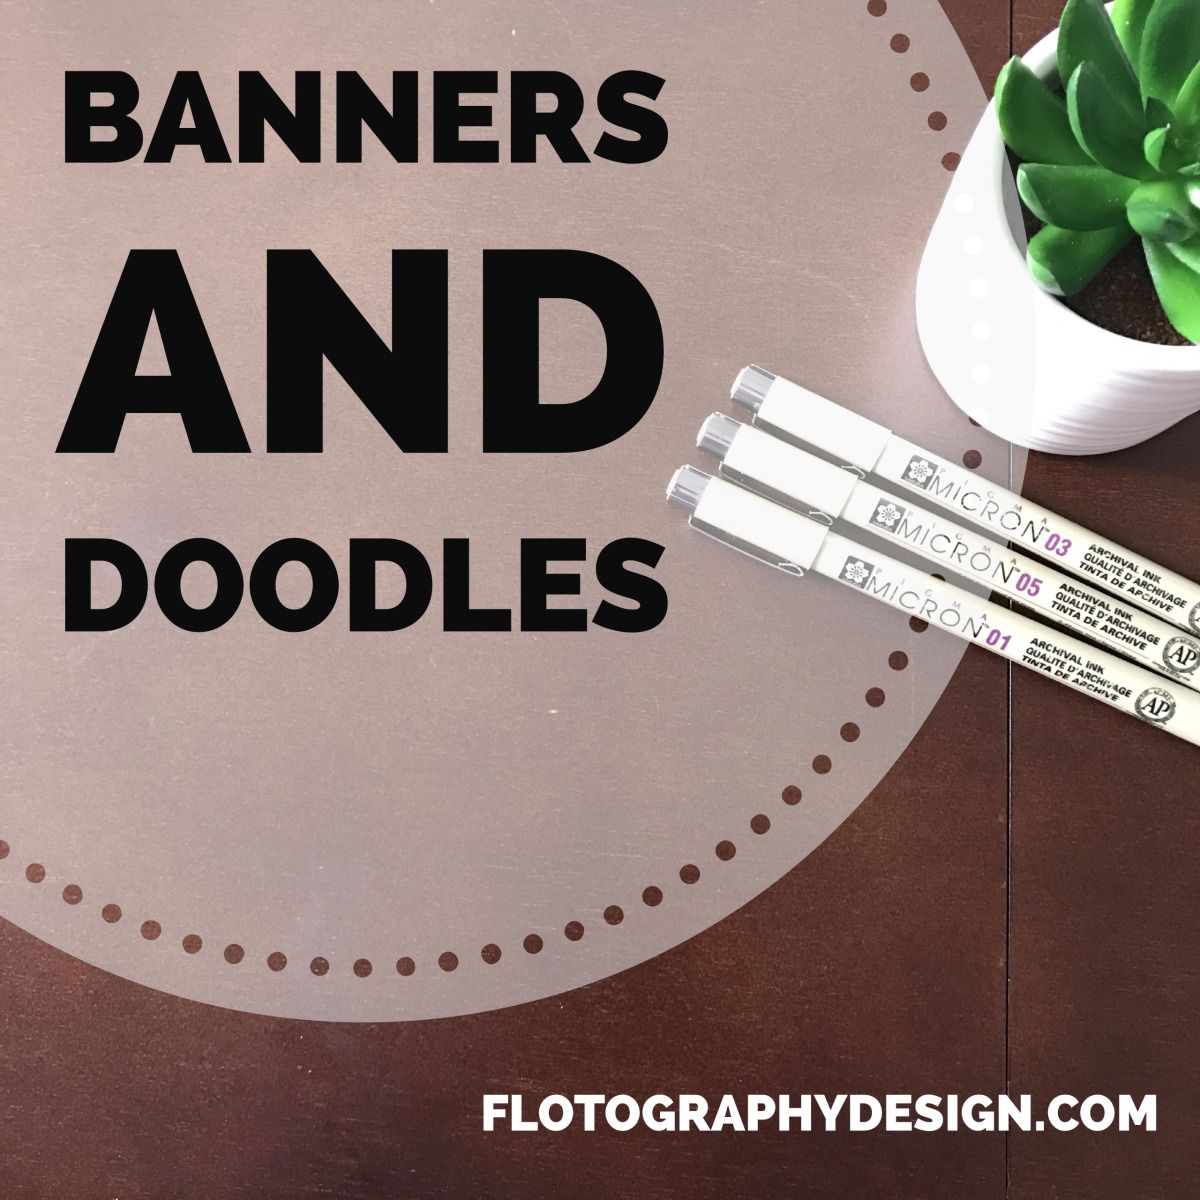 Fun With Floto Banners And Doodles With Images Banner Drawing Doodles Banner